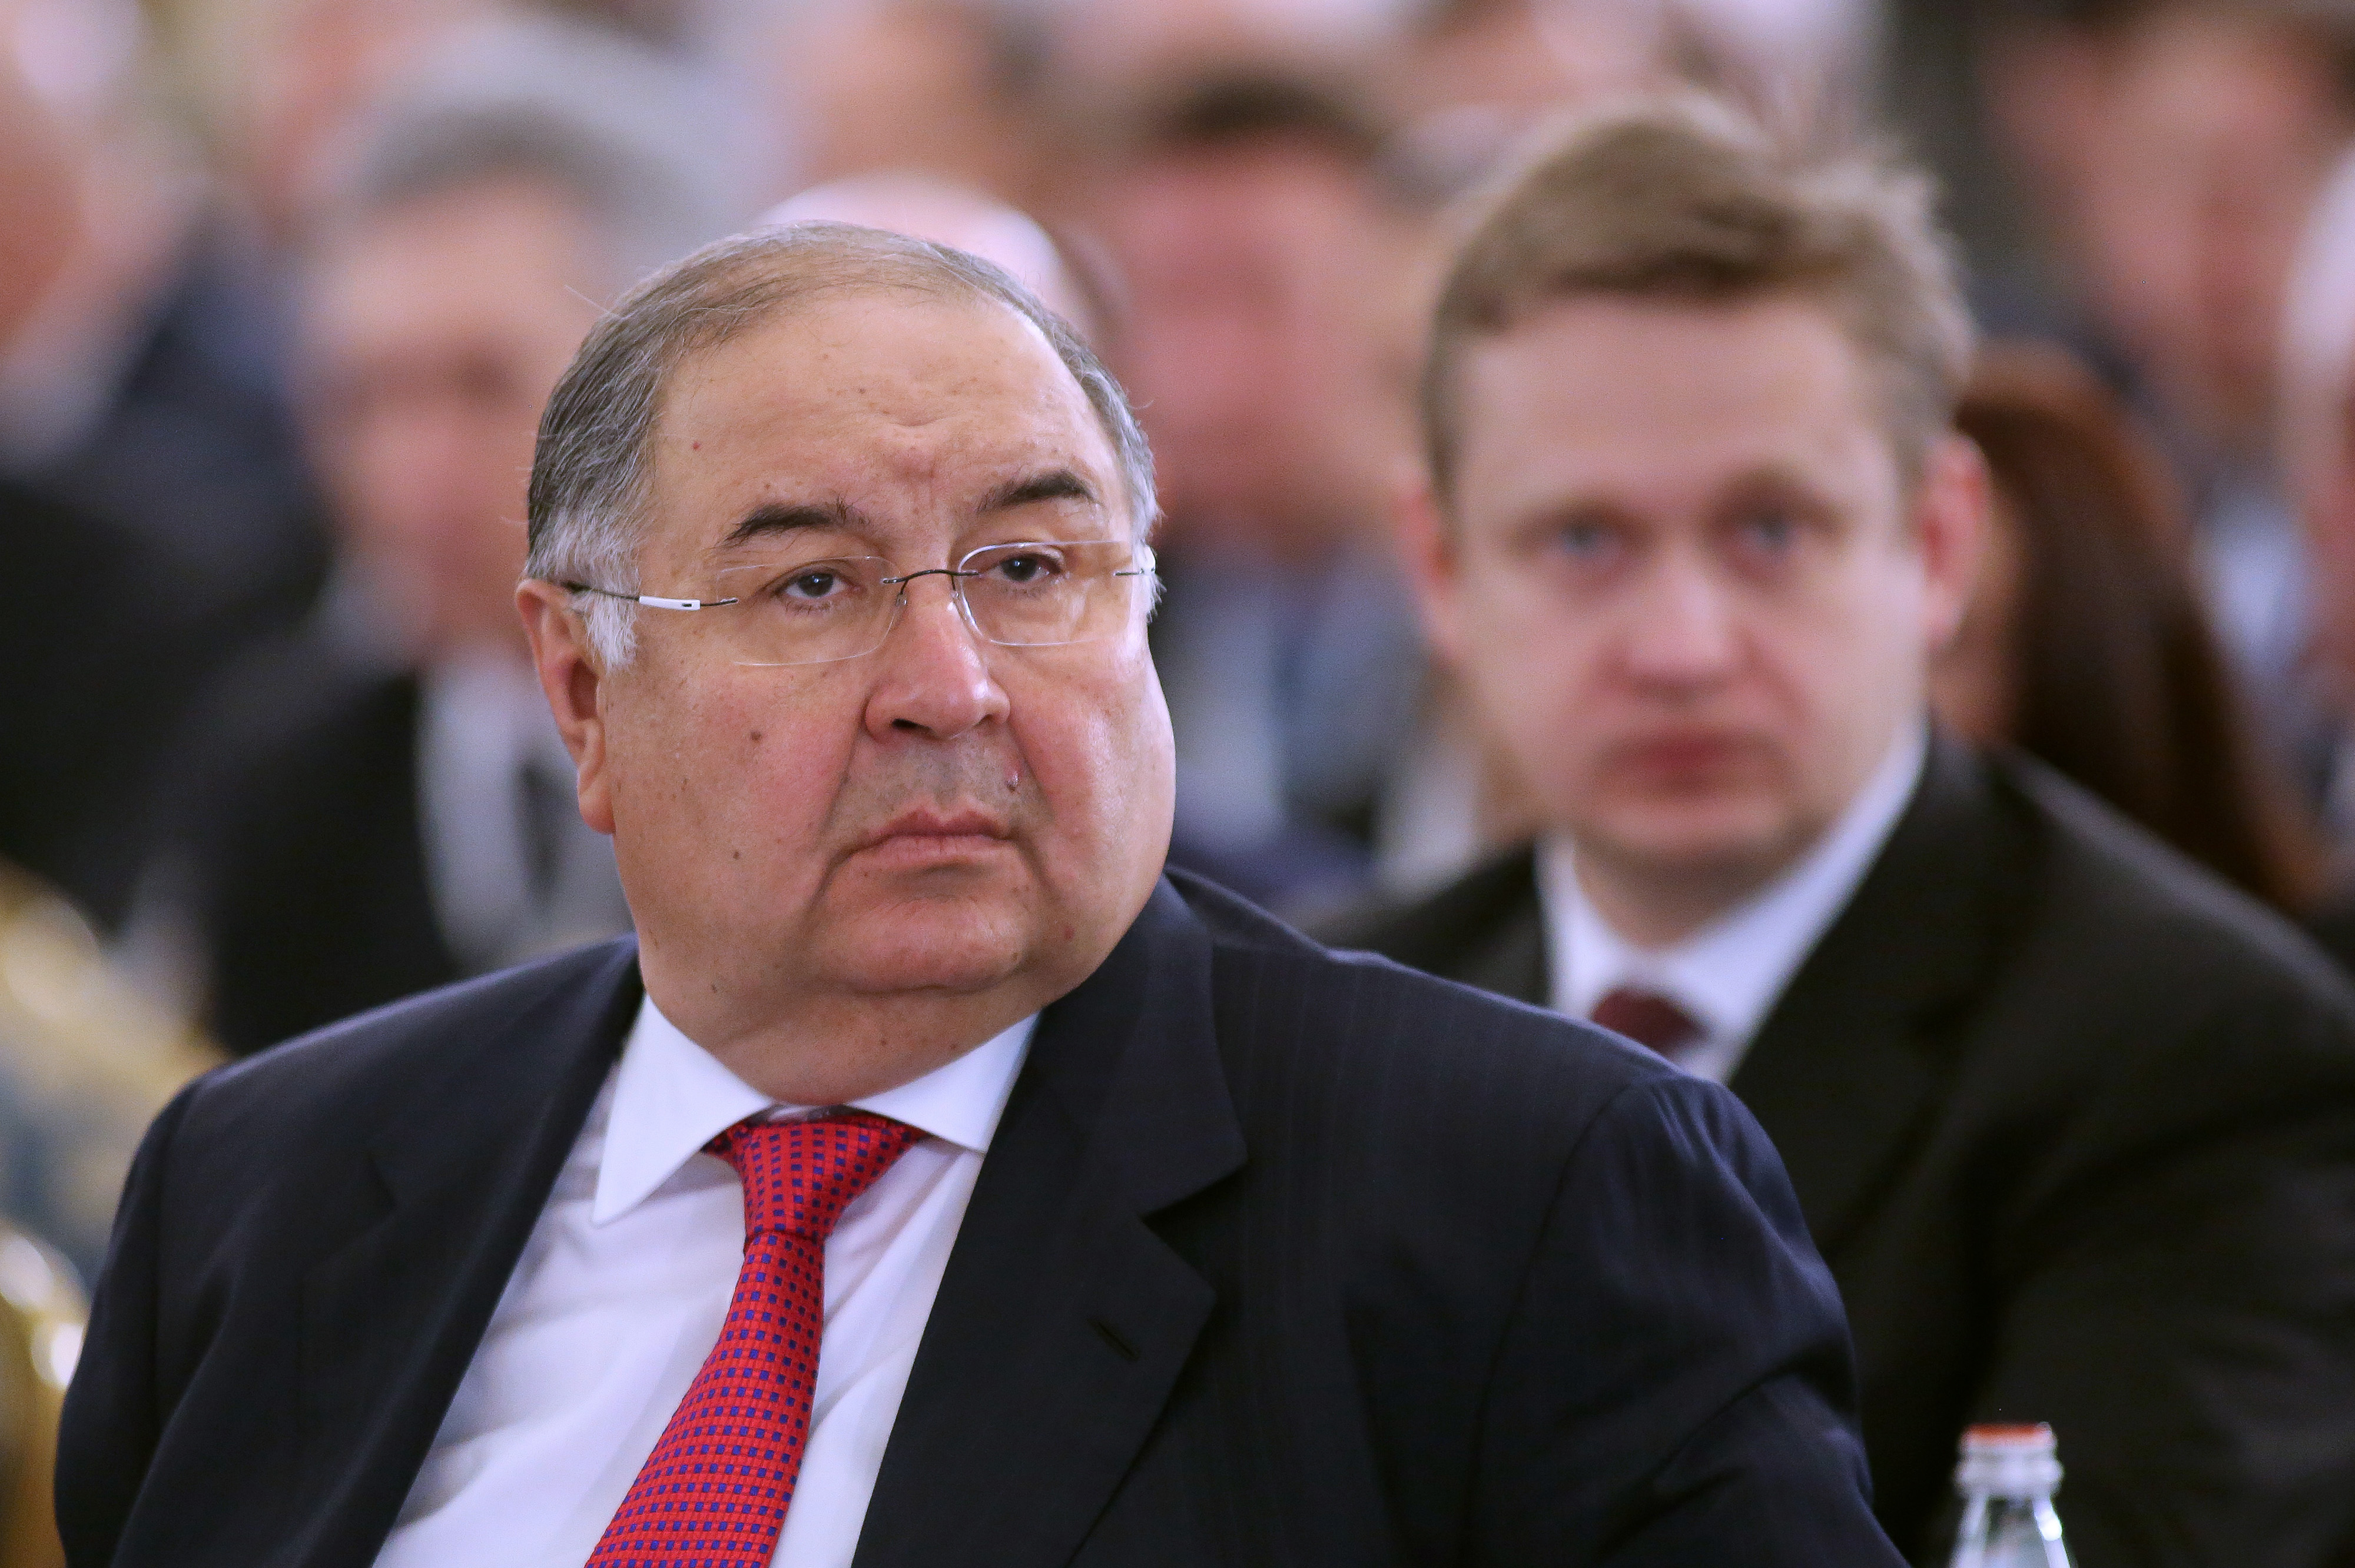 Alisher Usmanov, Russian billionaire and owner of USM Holdings Ltd., left, attends a meeting of the Russian Union of Industrialists and Entrepreneurs (RSPP) during Russia Business Week in Moscow, March 19, 2015.